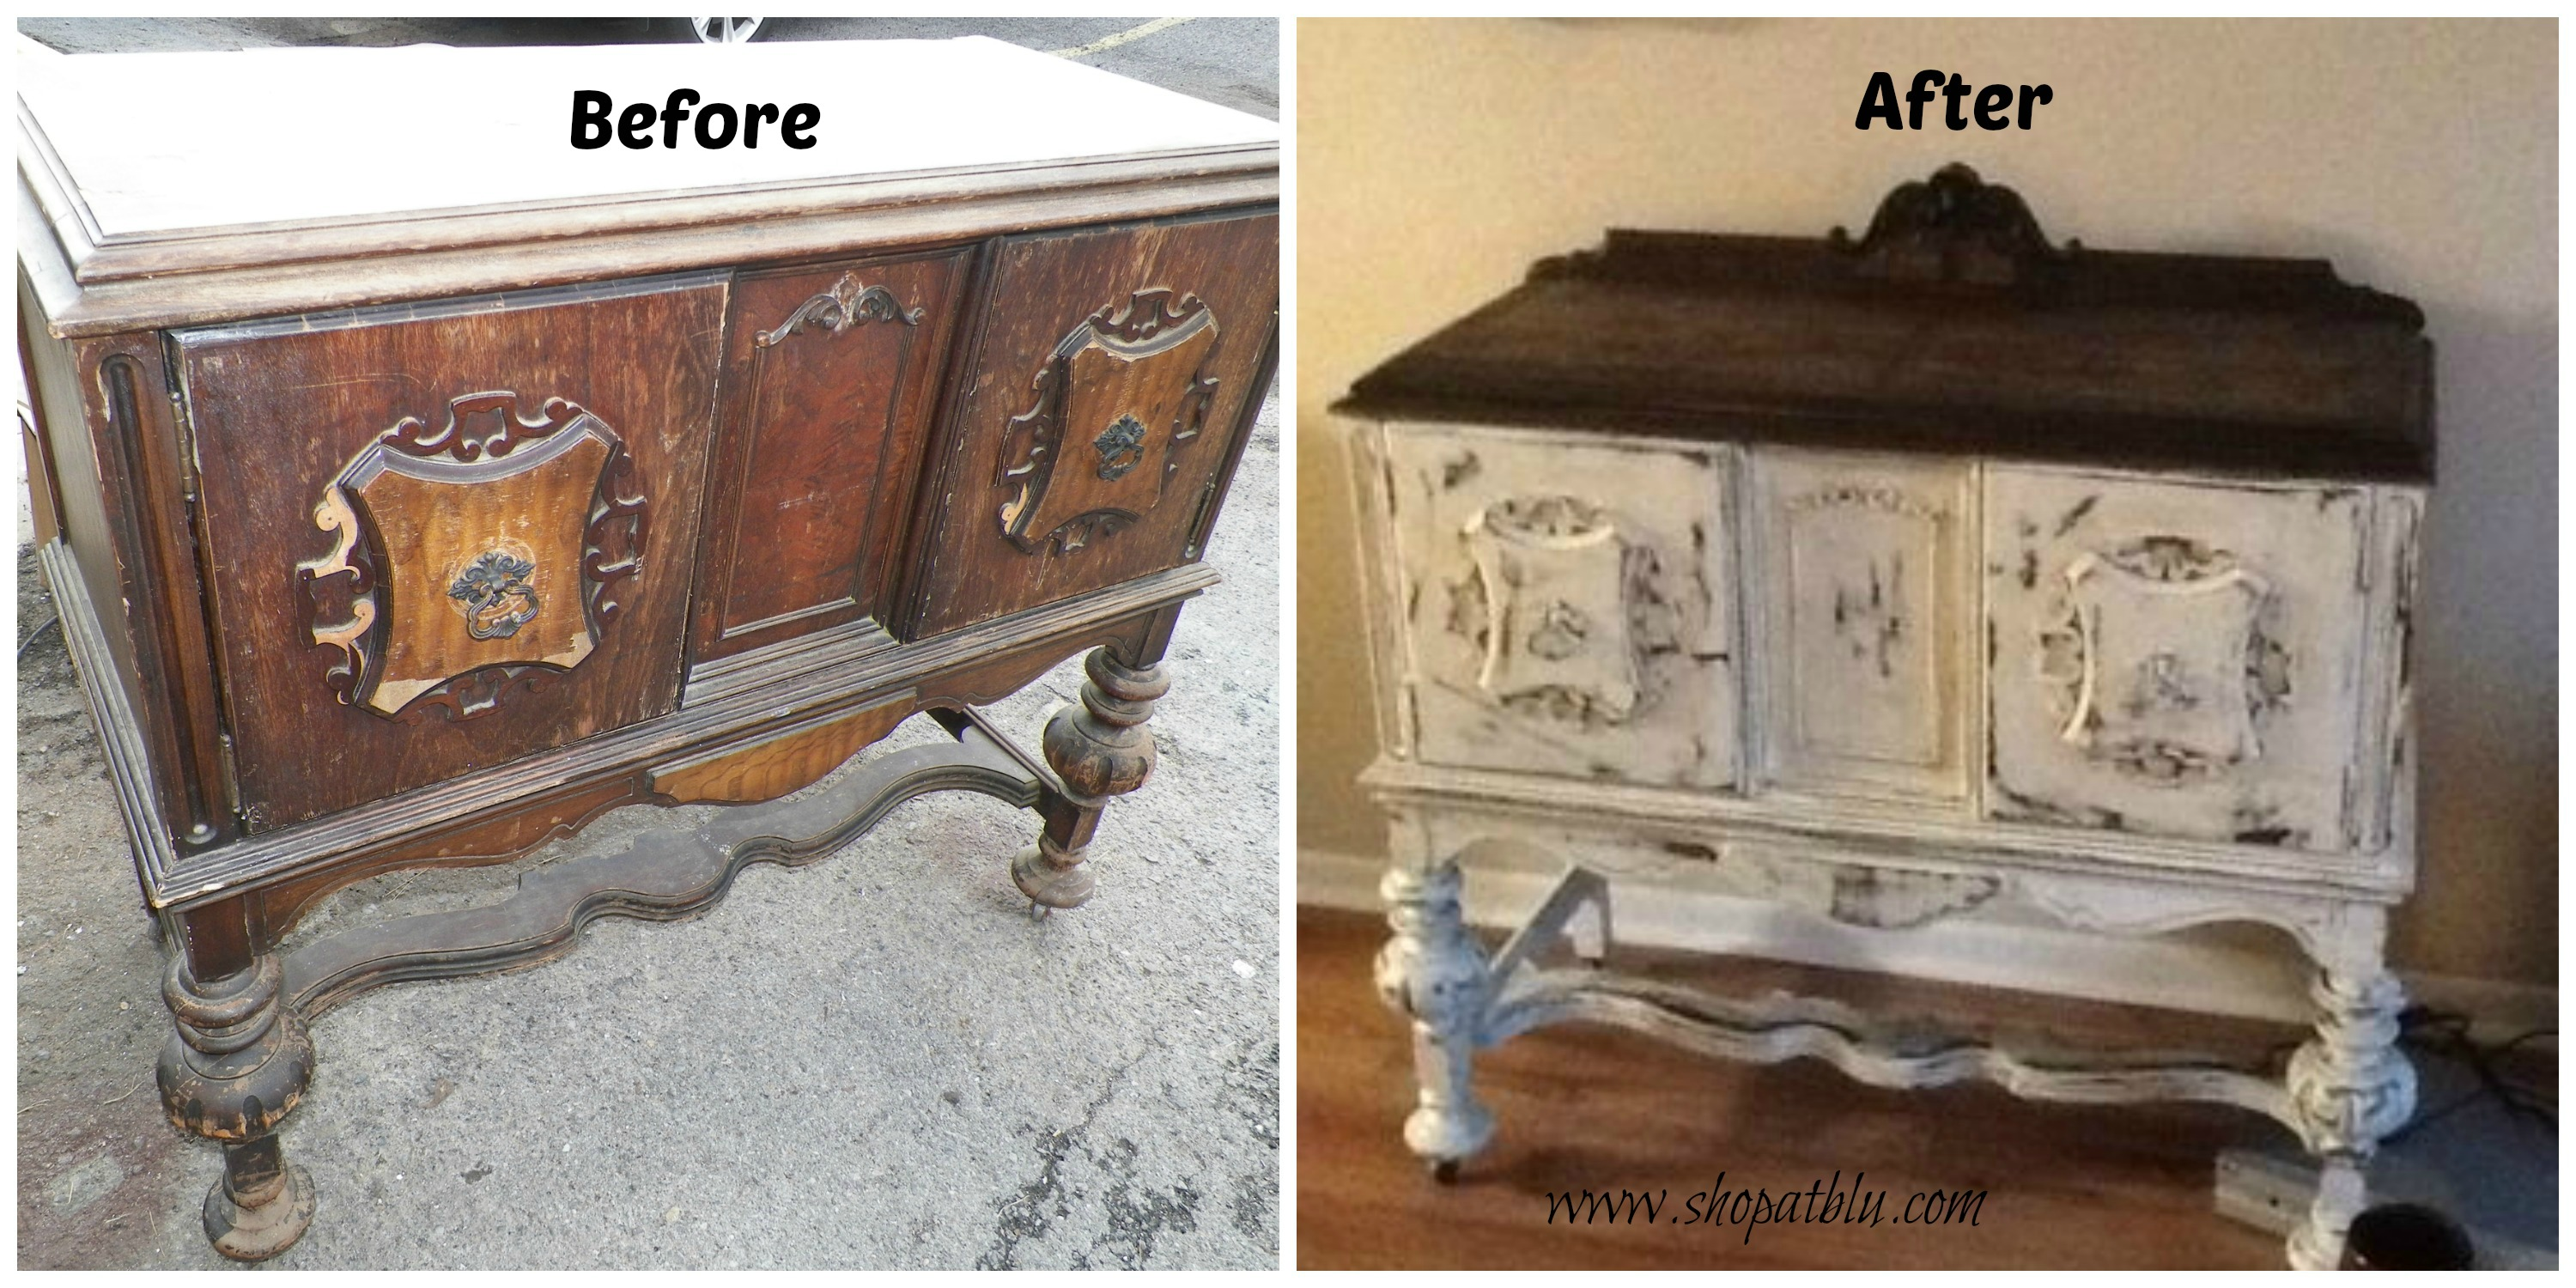 The Blue Building Antiques Alabaster, AL Upcycle Project Transformation with Paint antique sideboard